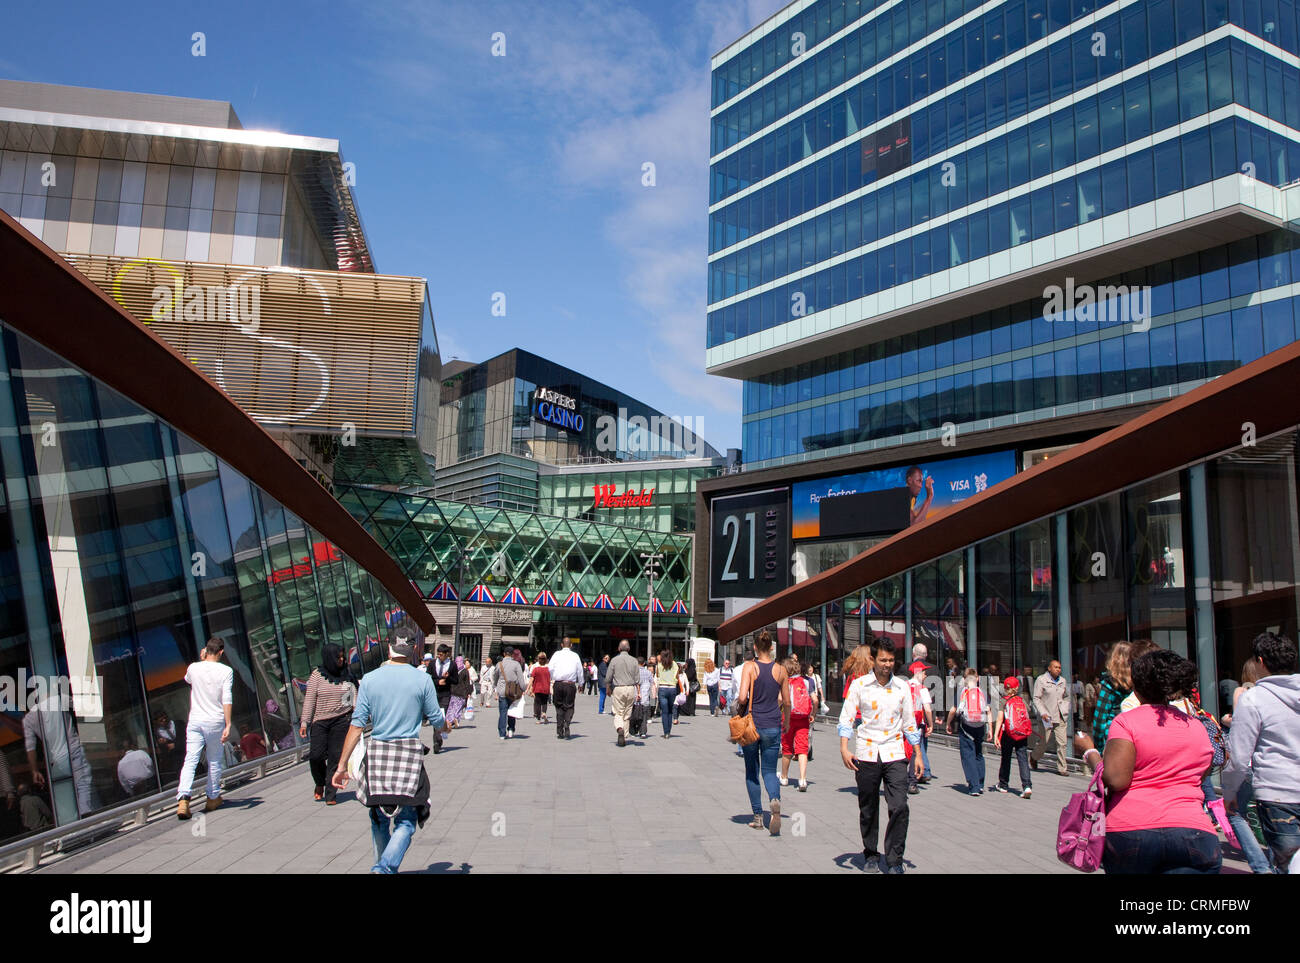 7a40567d21488e Entrance to Westfield Stratford City shopping centre